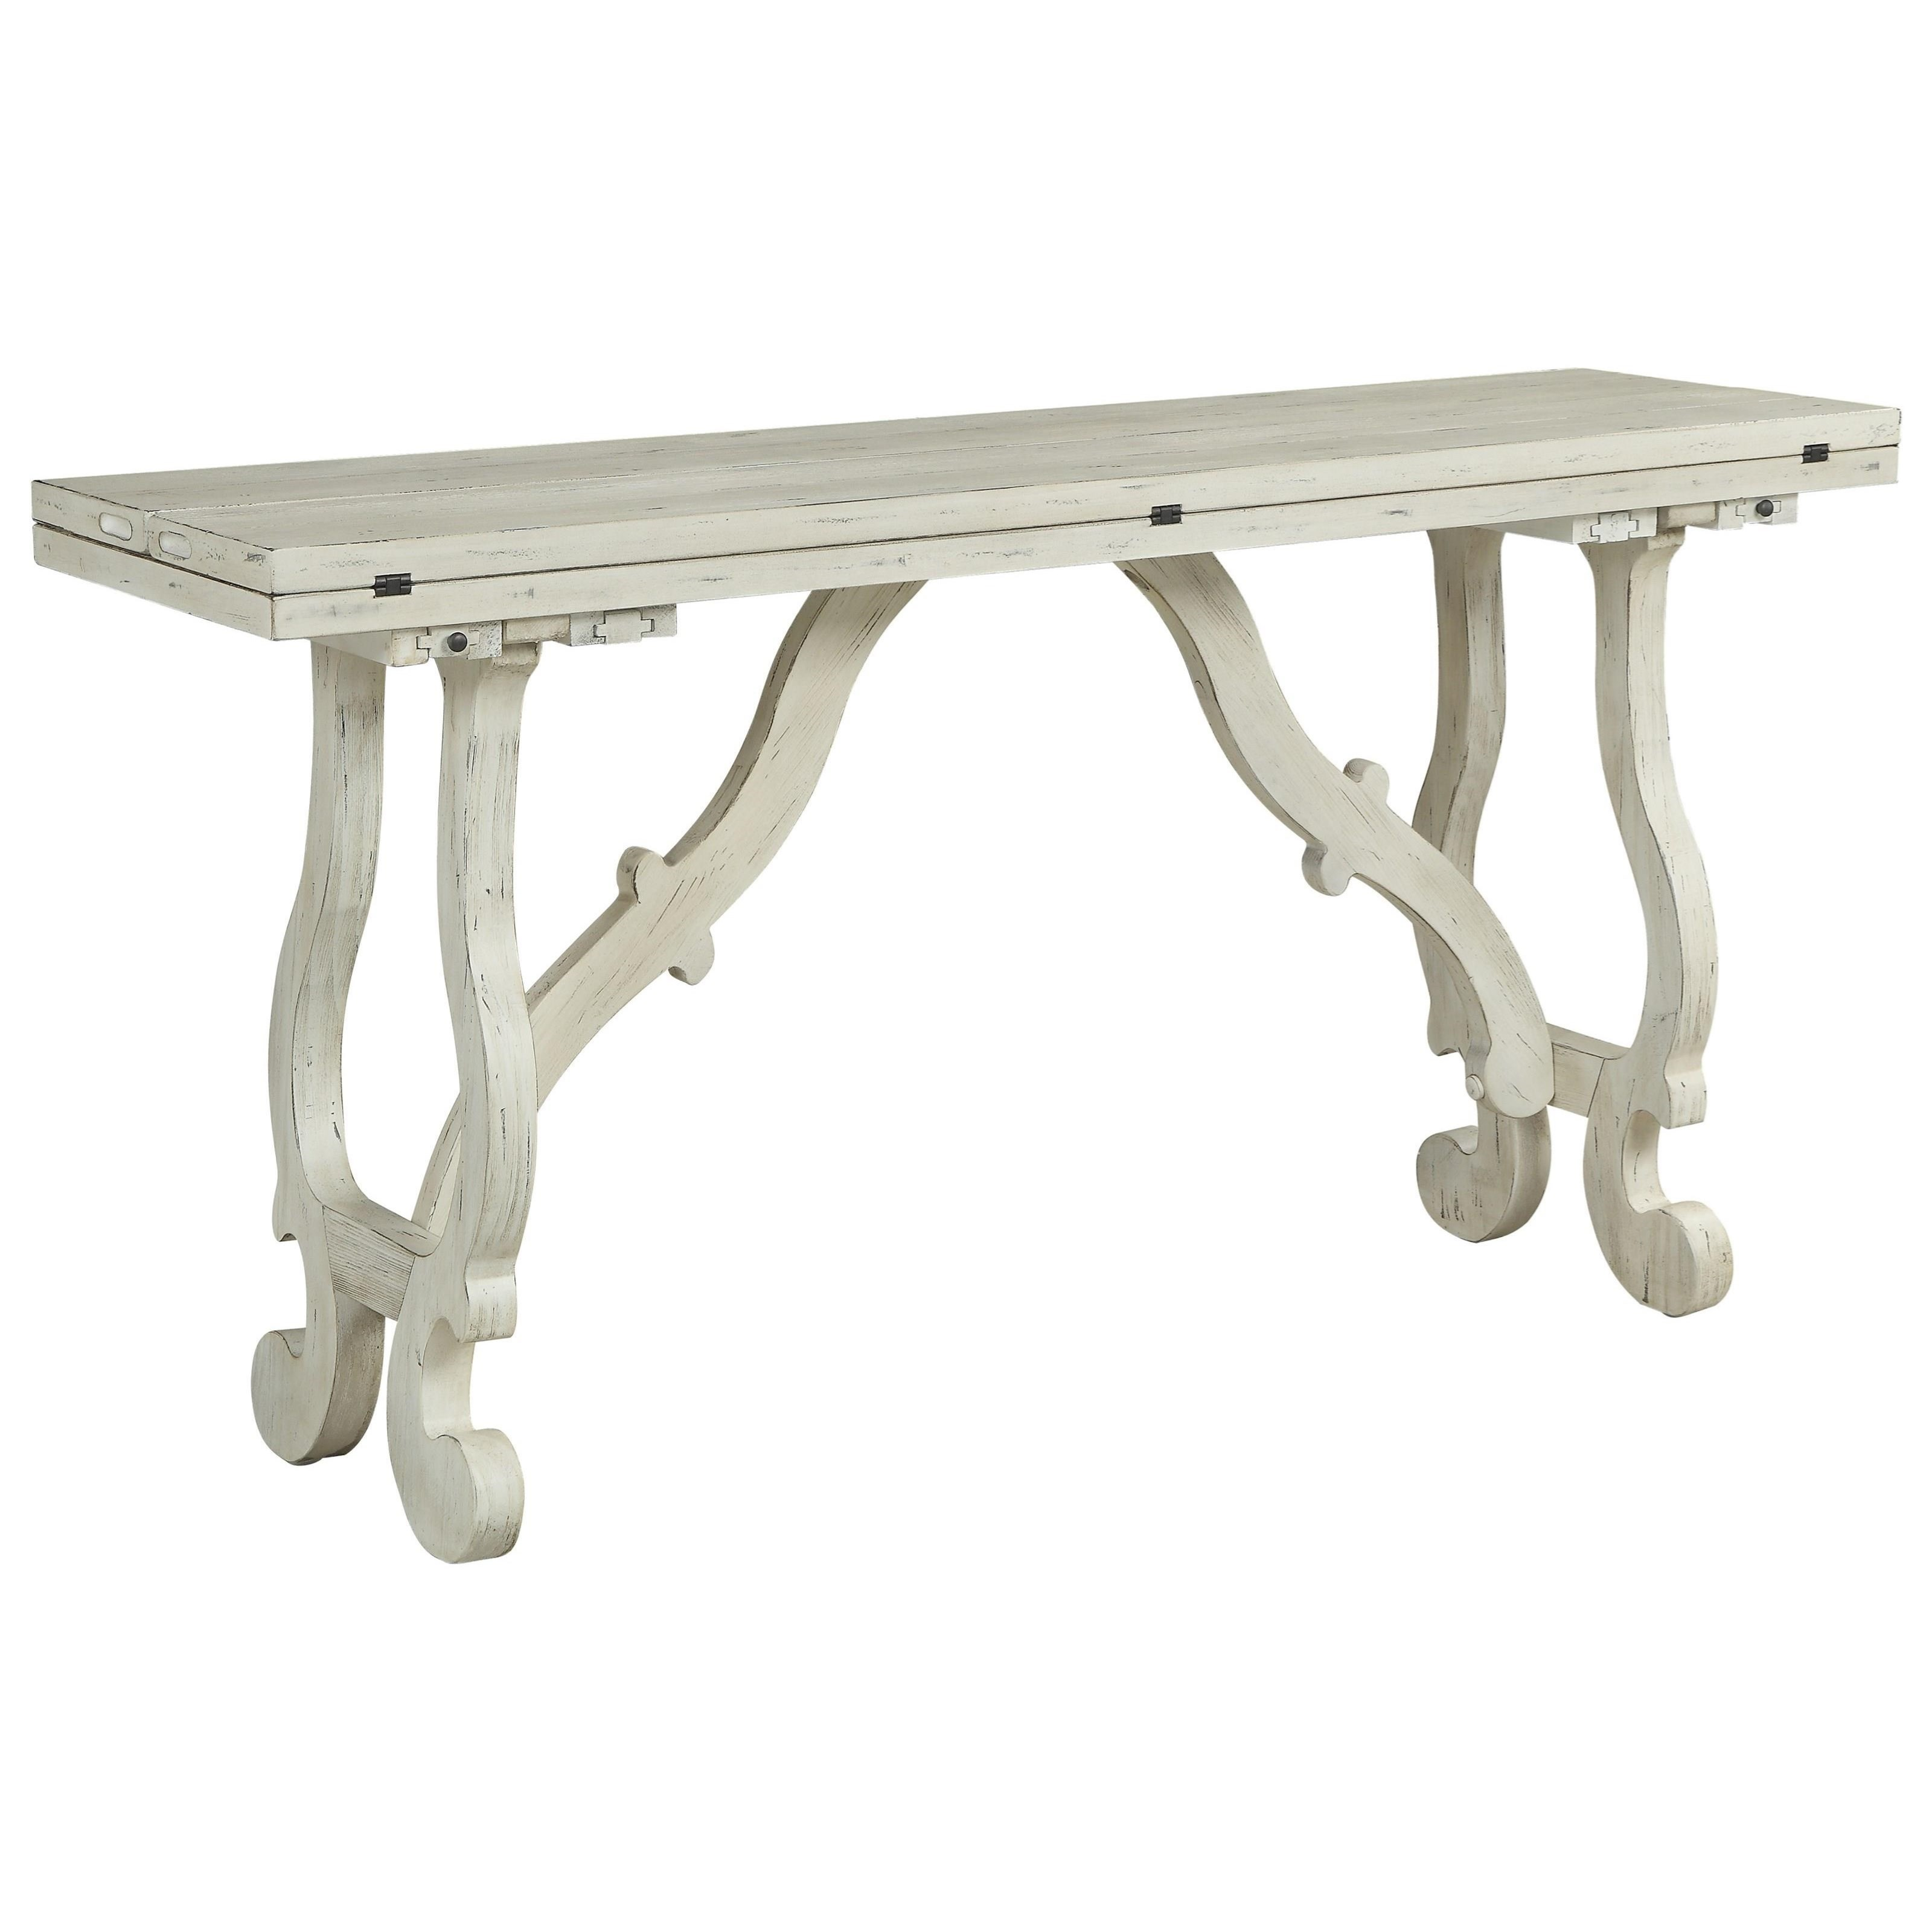 Amazing Coast To Coast Imports Orchard Park 22523 Orchard Park Fold Out Console |  Furniture And ApplianceMart | Sofa Tables/Consoles